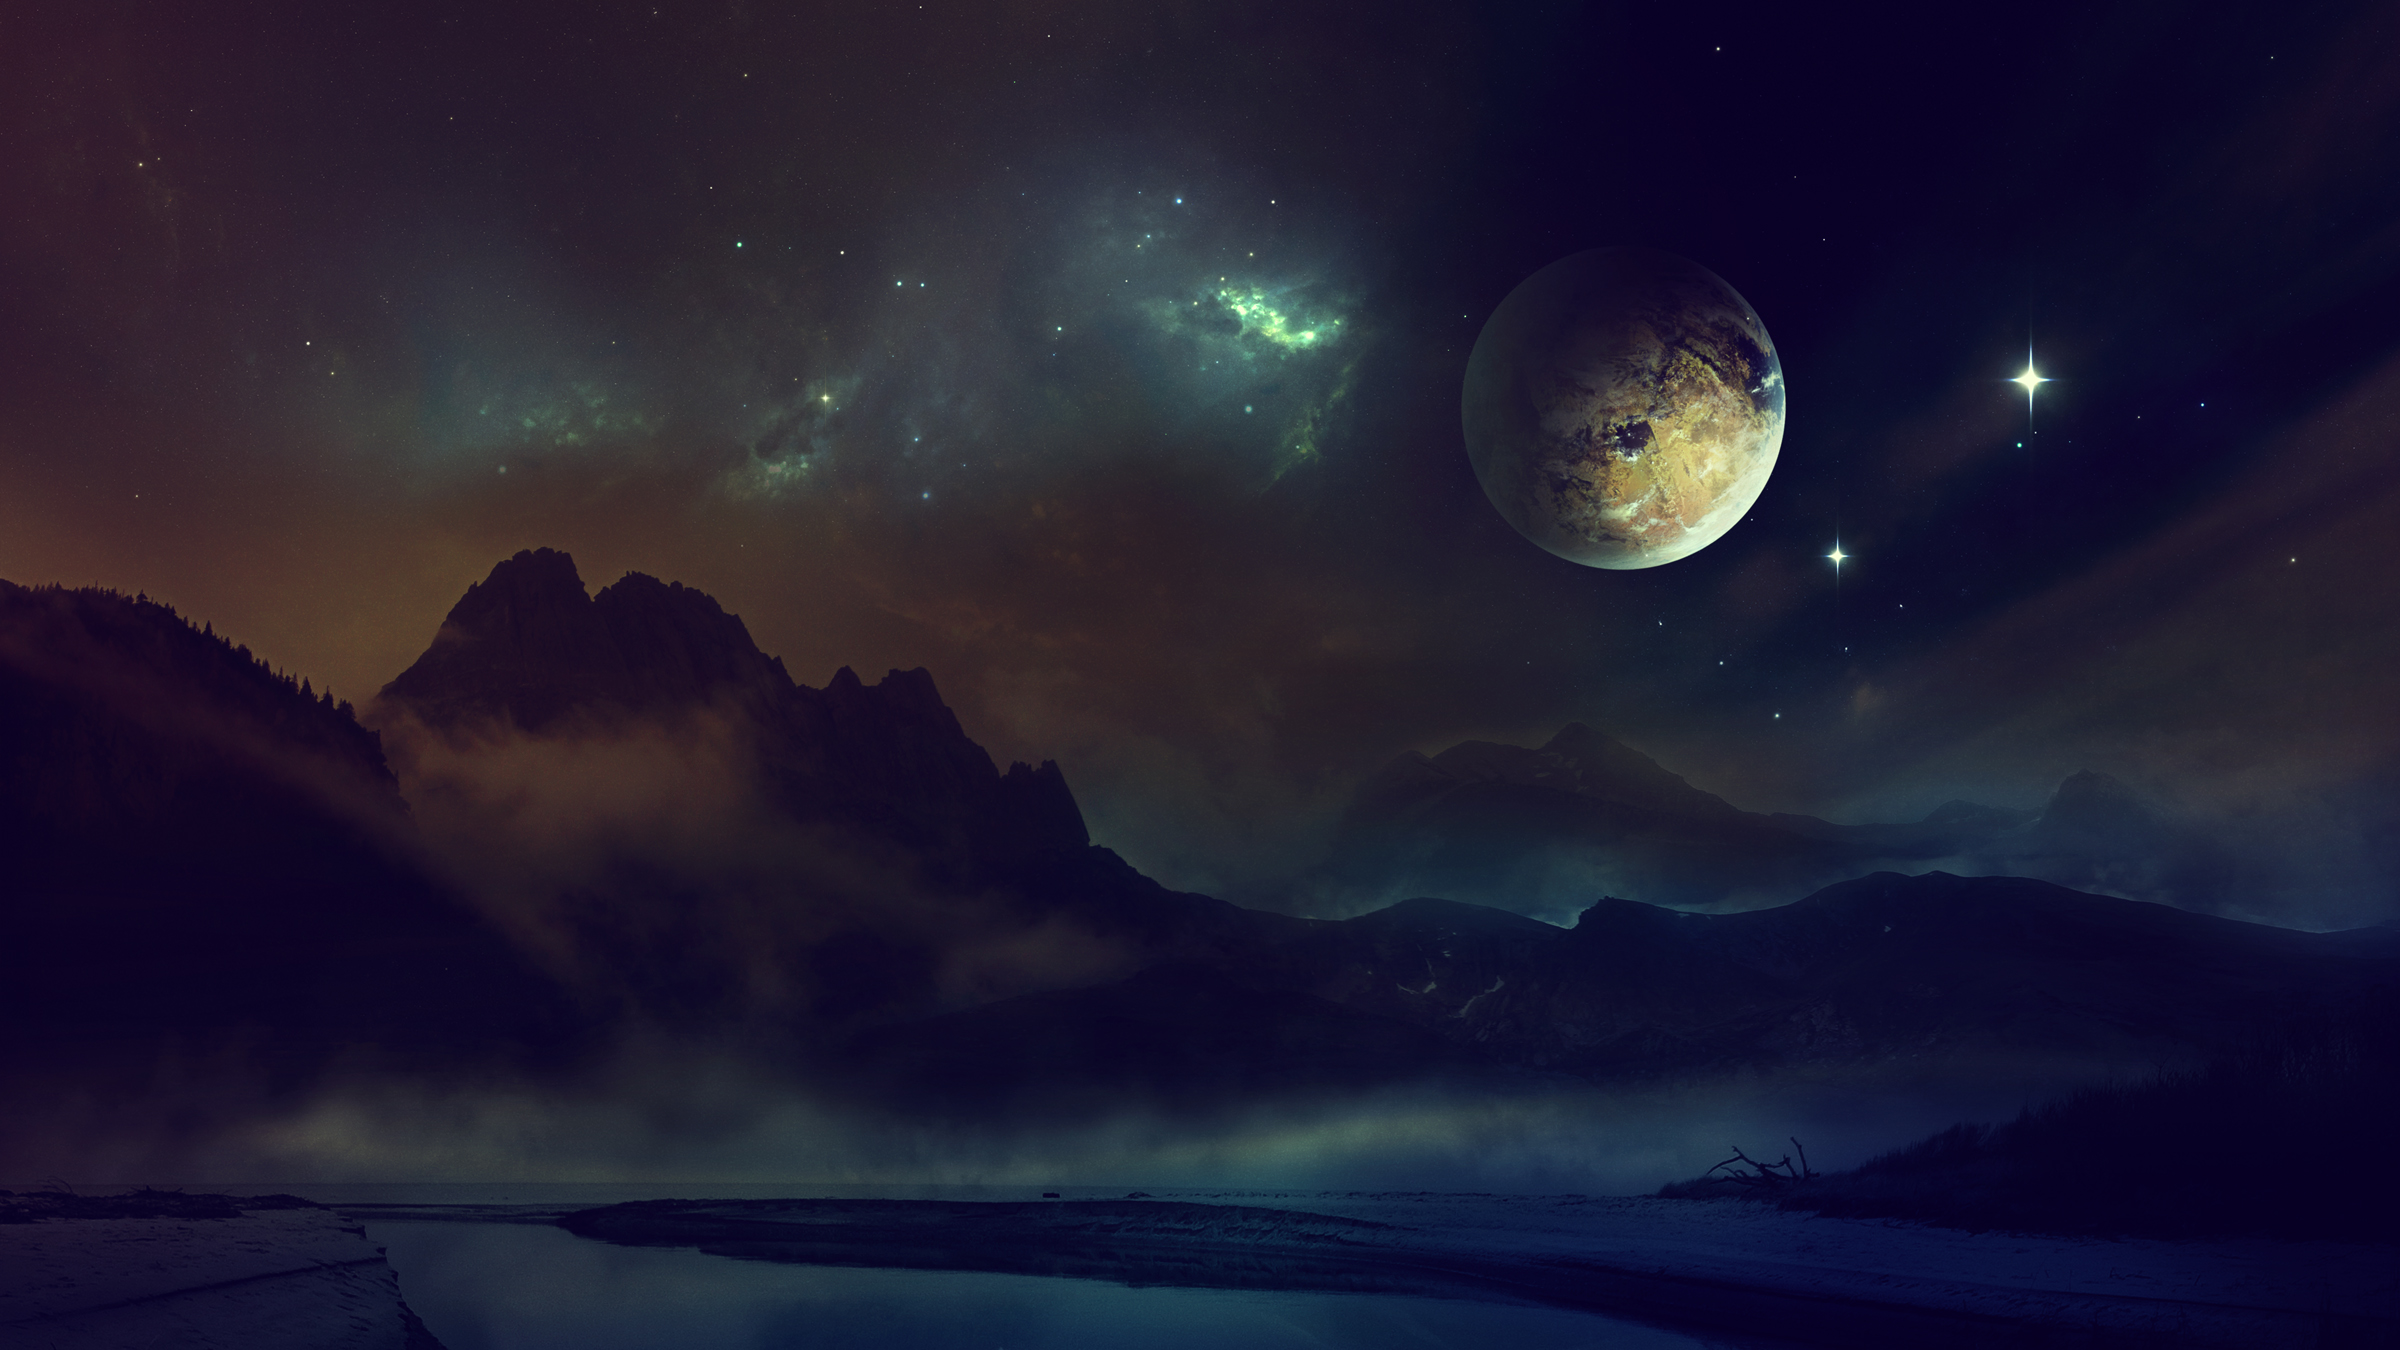 152178 download wallpaper Universe, Planet, Shine, Light, Night, Sky screensavers and pictures for free